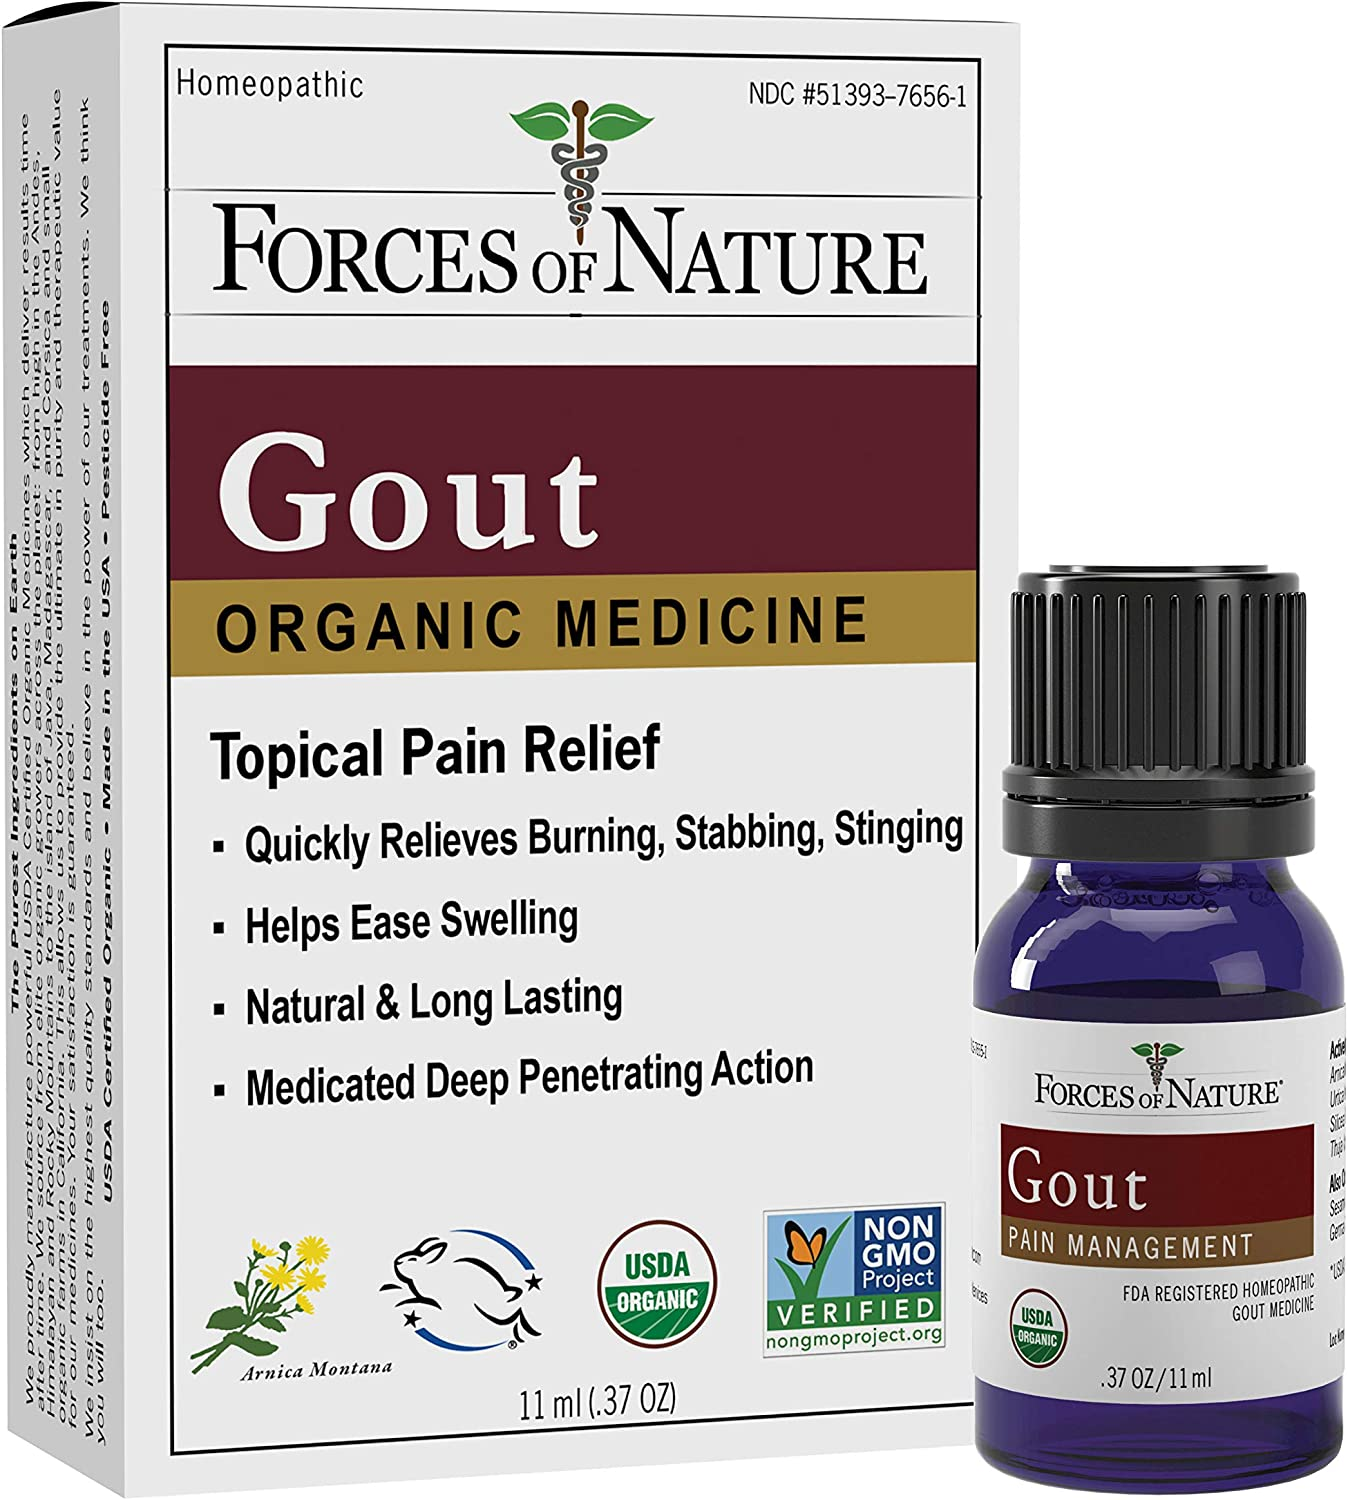 Forces of Nature – Natural, Organic Gout Relief (11ml) Non GMO, No Harmful Chemicals –Fast Acting Relief for Inflammation, Discomfort, Burning Pain Caused by Gout in the Toes, Feet, Hands and Joints